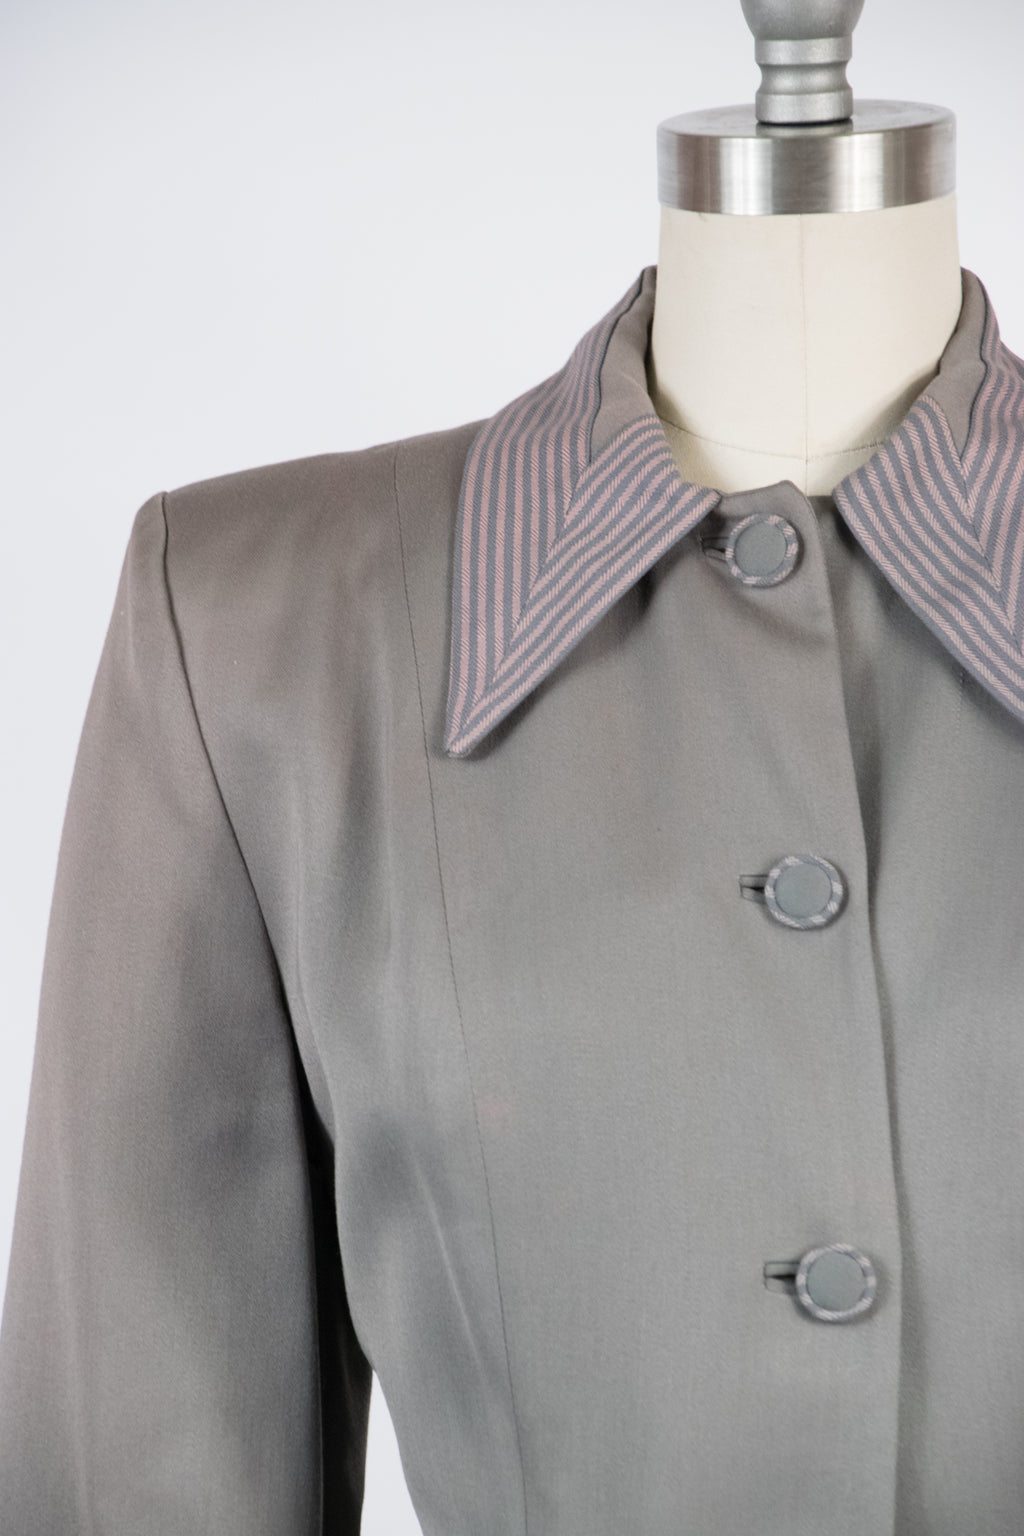 Tailored 1940s Sleek Gabardine Jacket with Pink Striped Collar, Buttons and Pockets